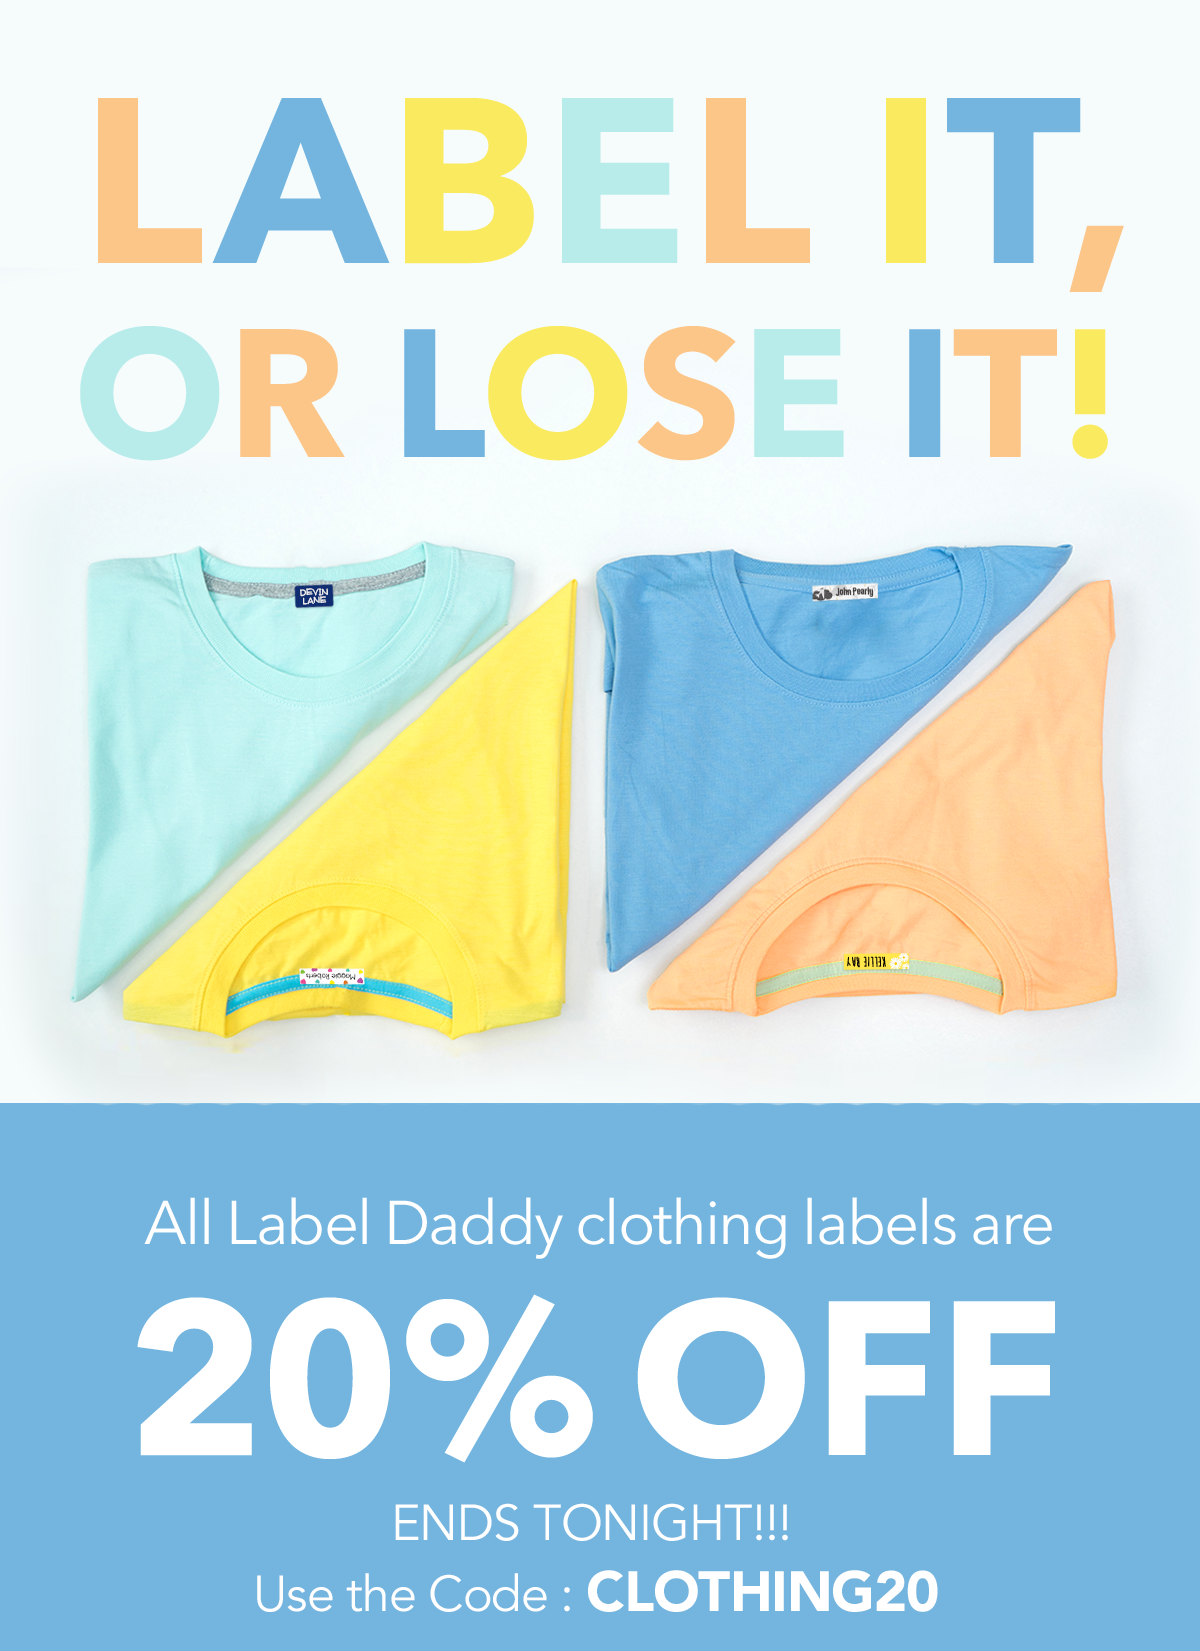 All Label Daddy Clothing Labels are 20% Off. Use Code: CLOTHING20. Ends Tonight